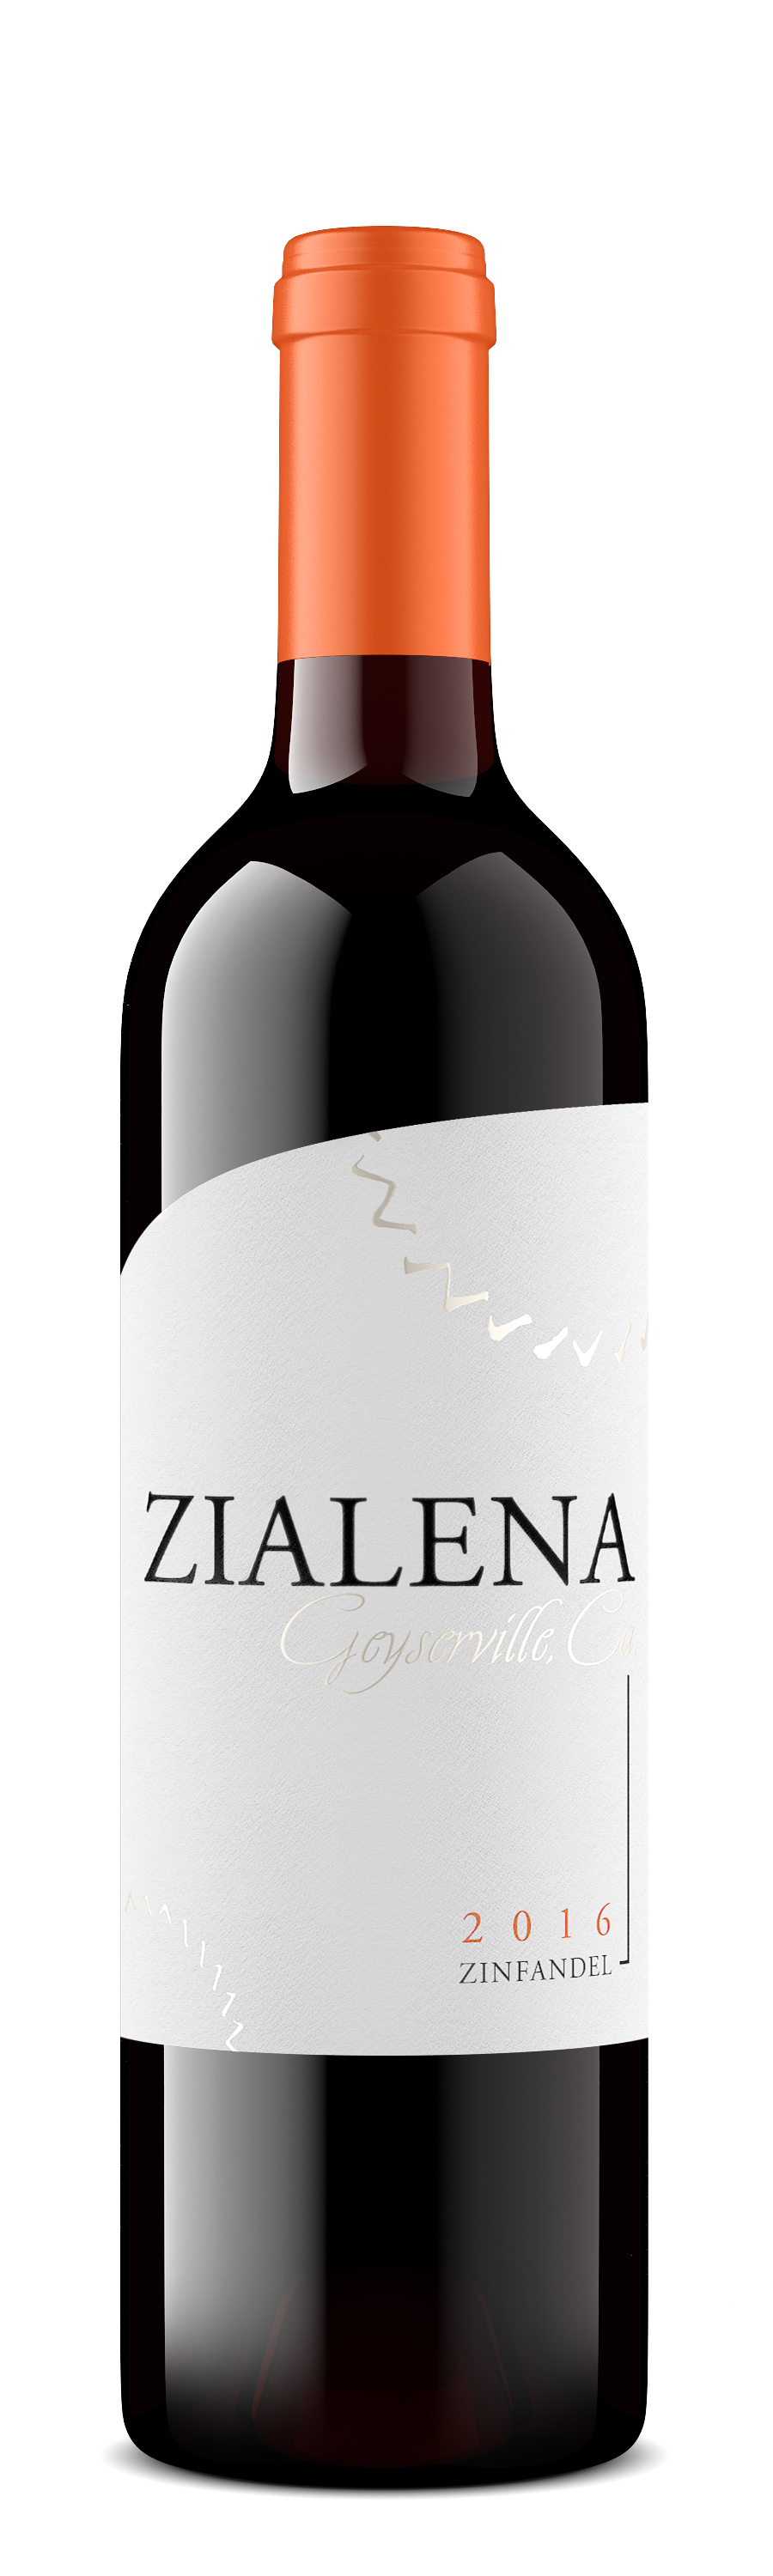 Product Image for 2016 Zinfandel